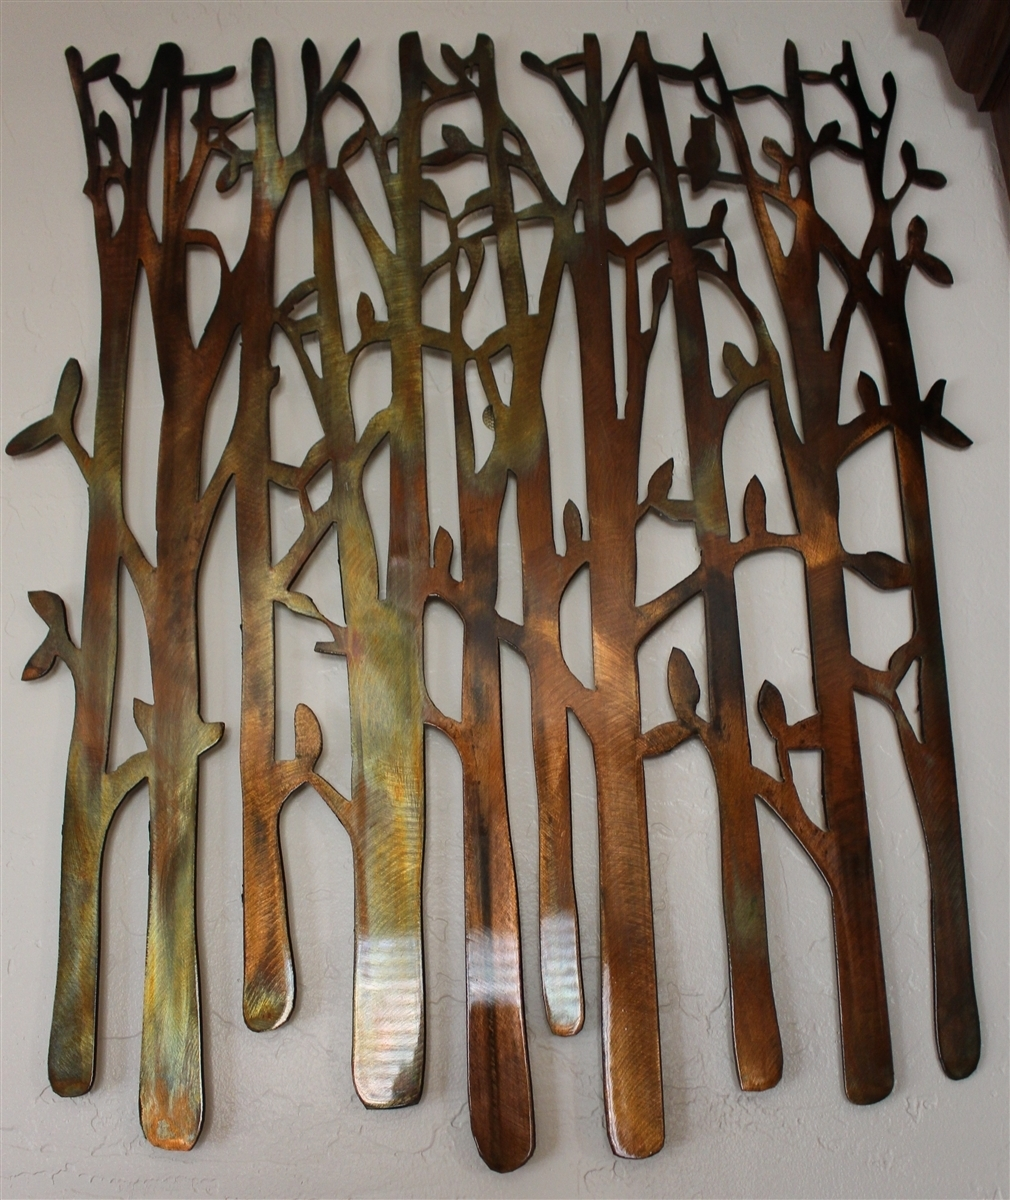 Metal Tree With Birds Wall Art – Blogtipsworld Throughout Most Recently Released Metal Tree Wall Art (Gallery 14 of 15)